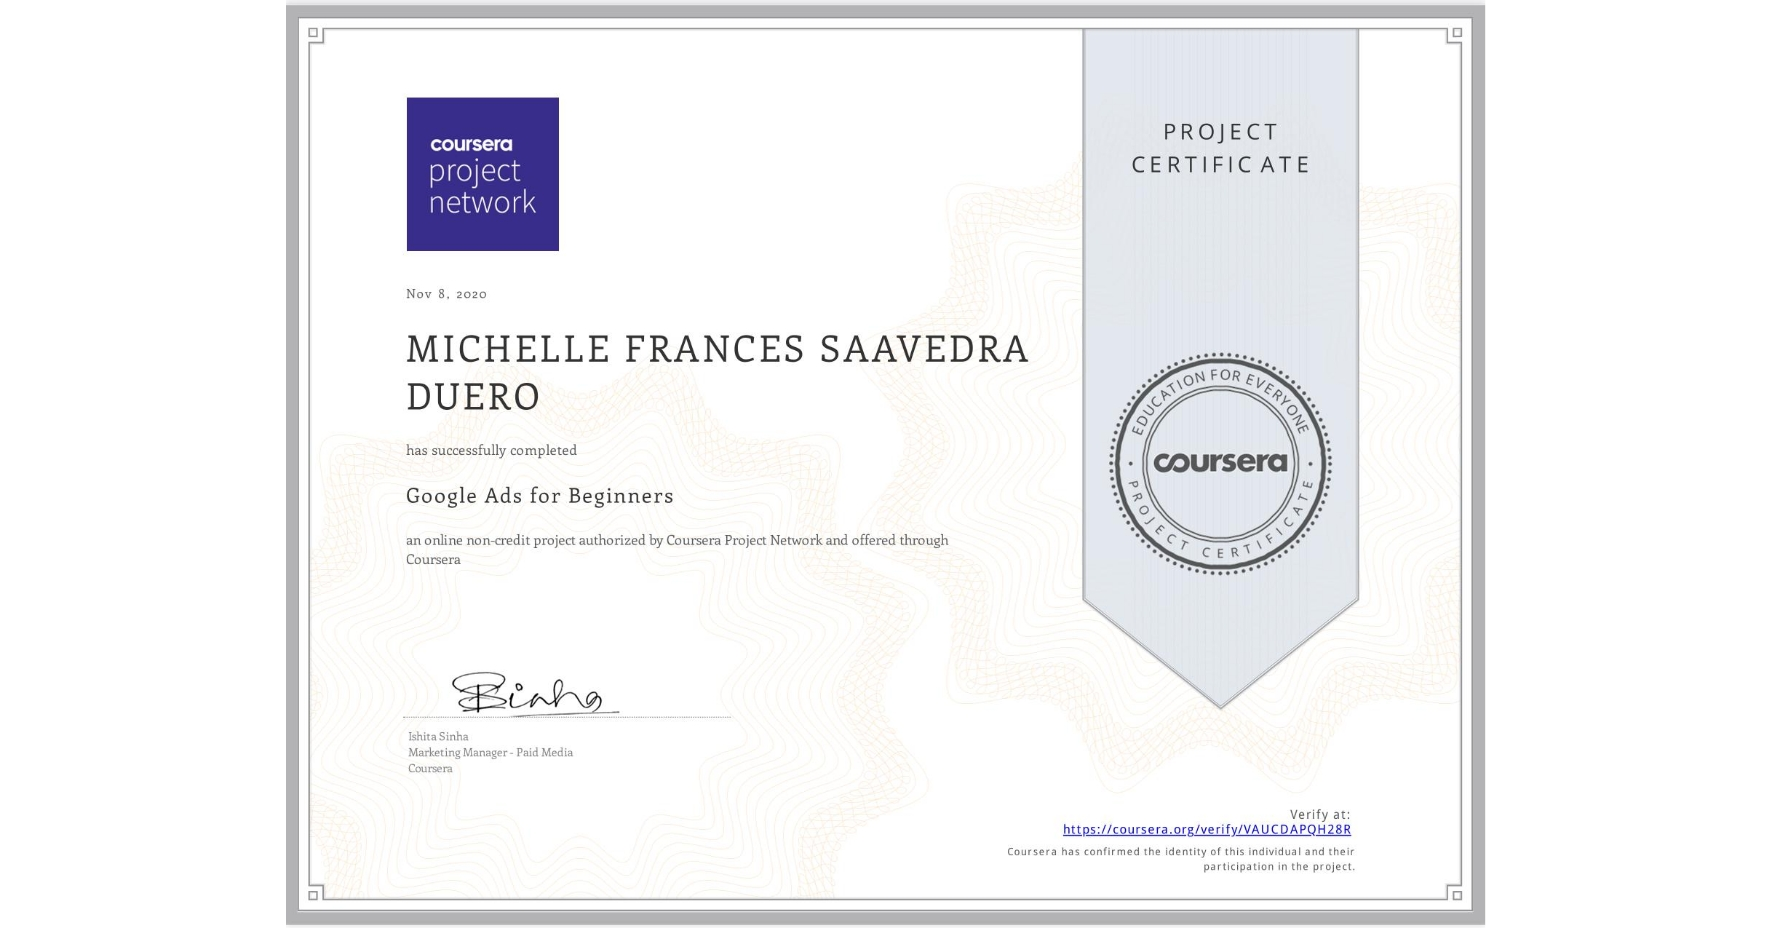 View certificate for MICHELLE FRANCES  SAAVEDRA DUERO, Google Ads for Beginners, an online non-credit course authorized by Coursera Project Network and offered through Coursera